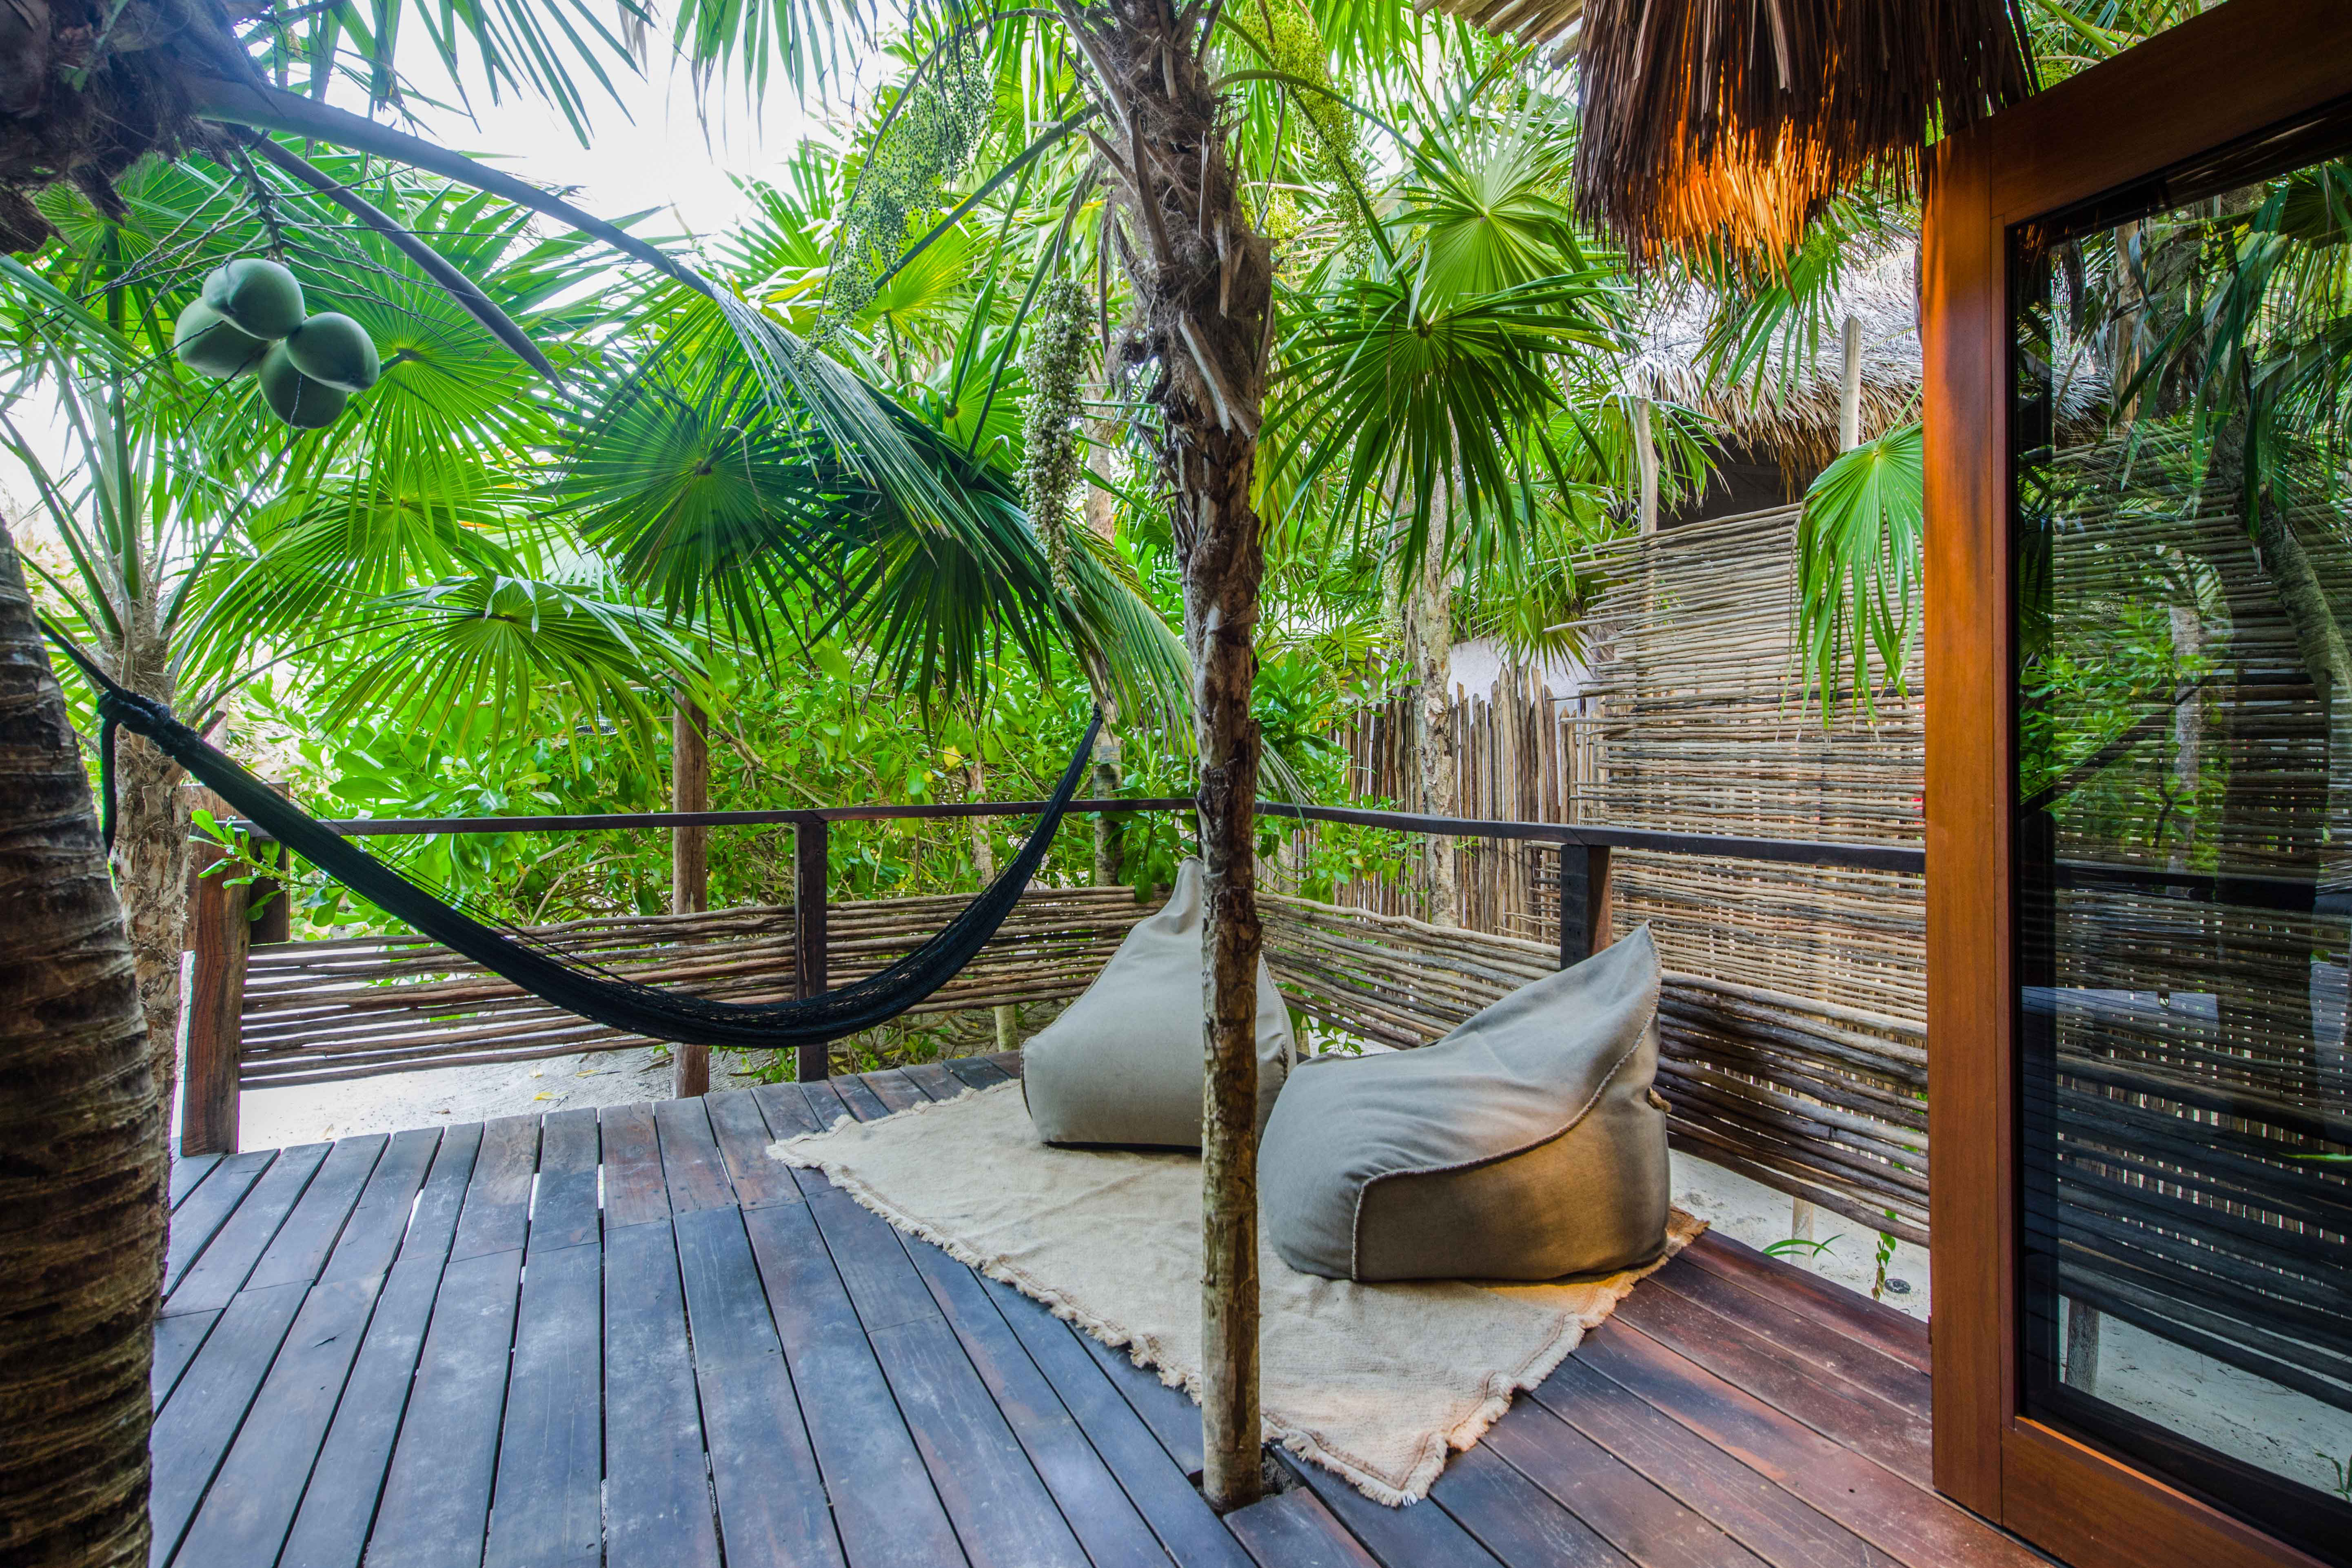 Luxury villas for family holidays | Casa Chechen, Tulum | Mr & Mrs Smith Editorial